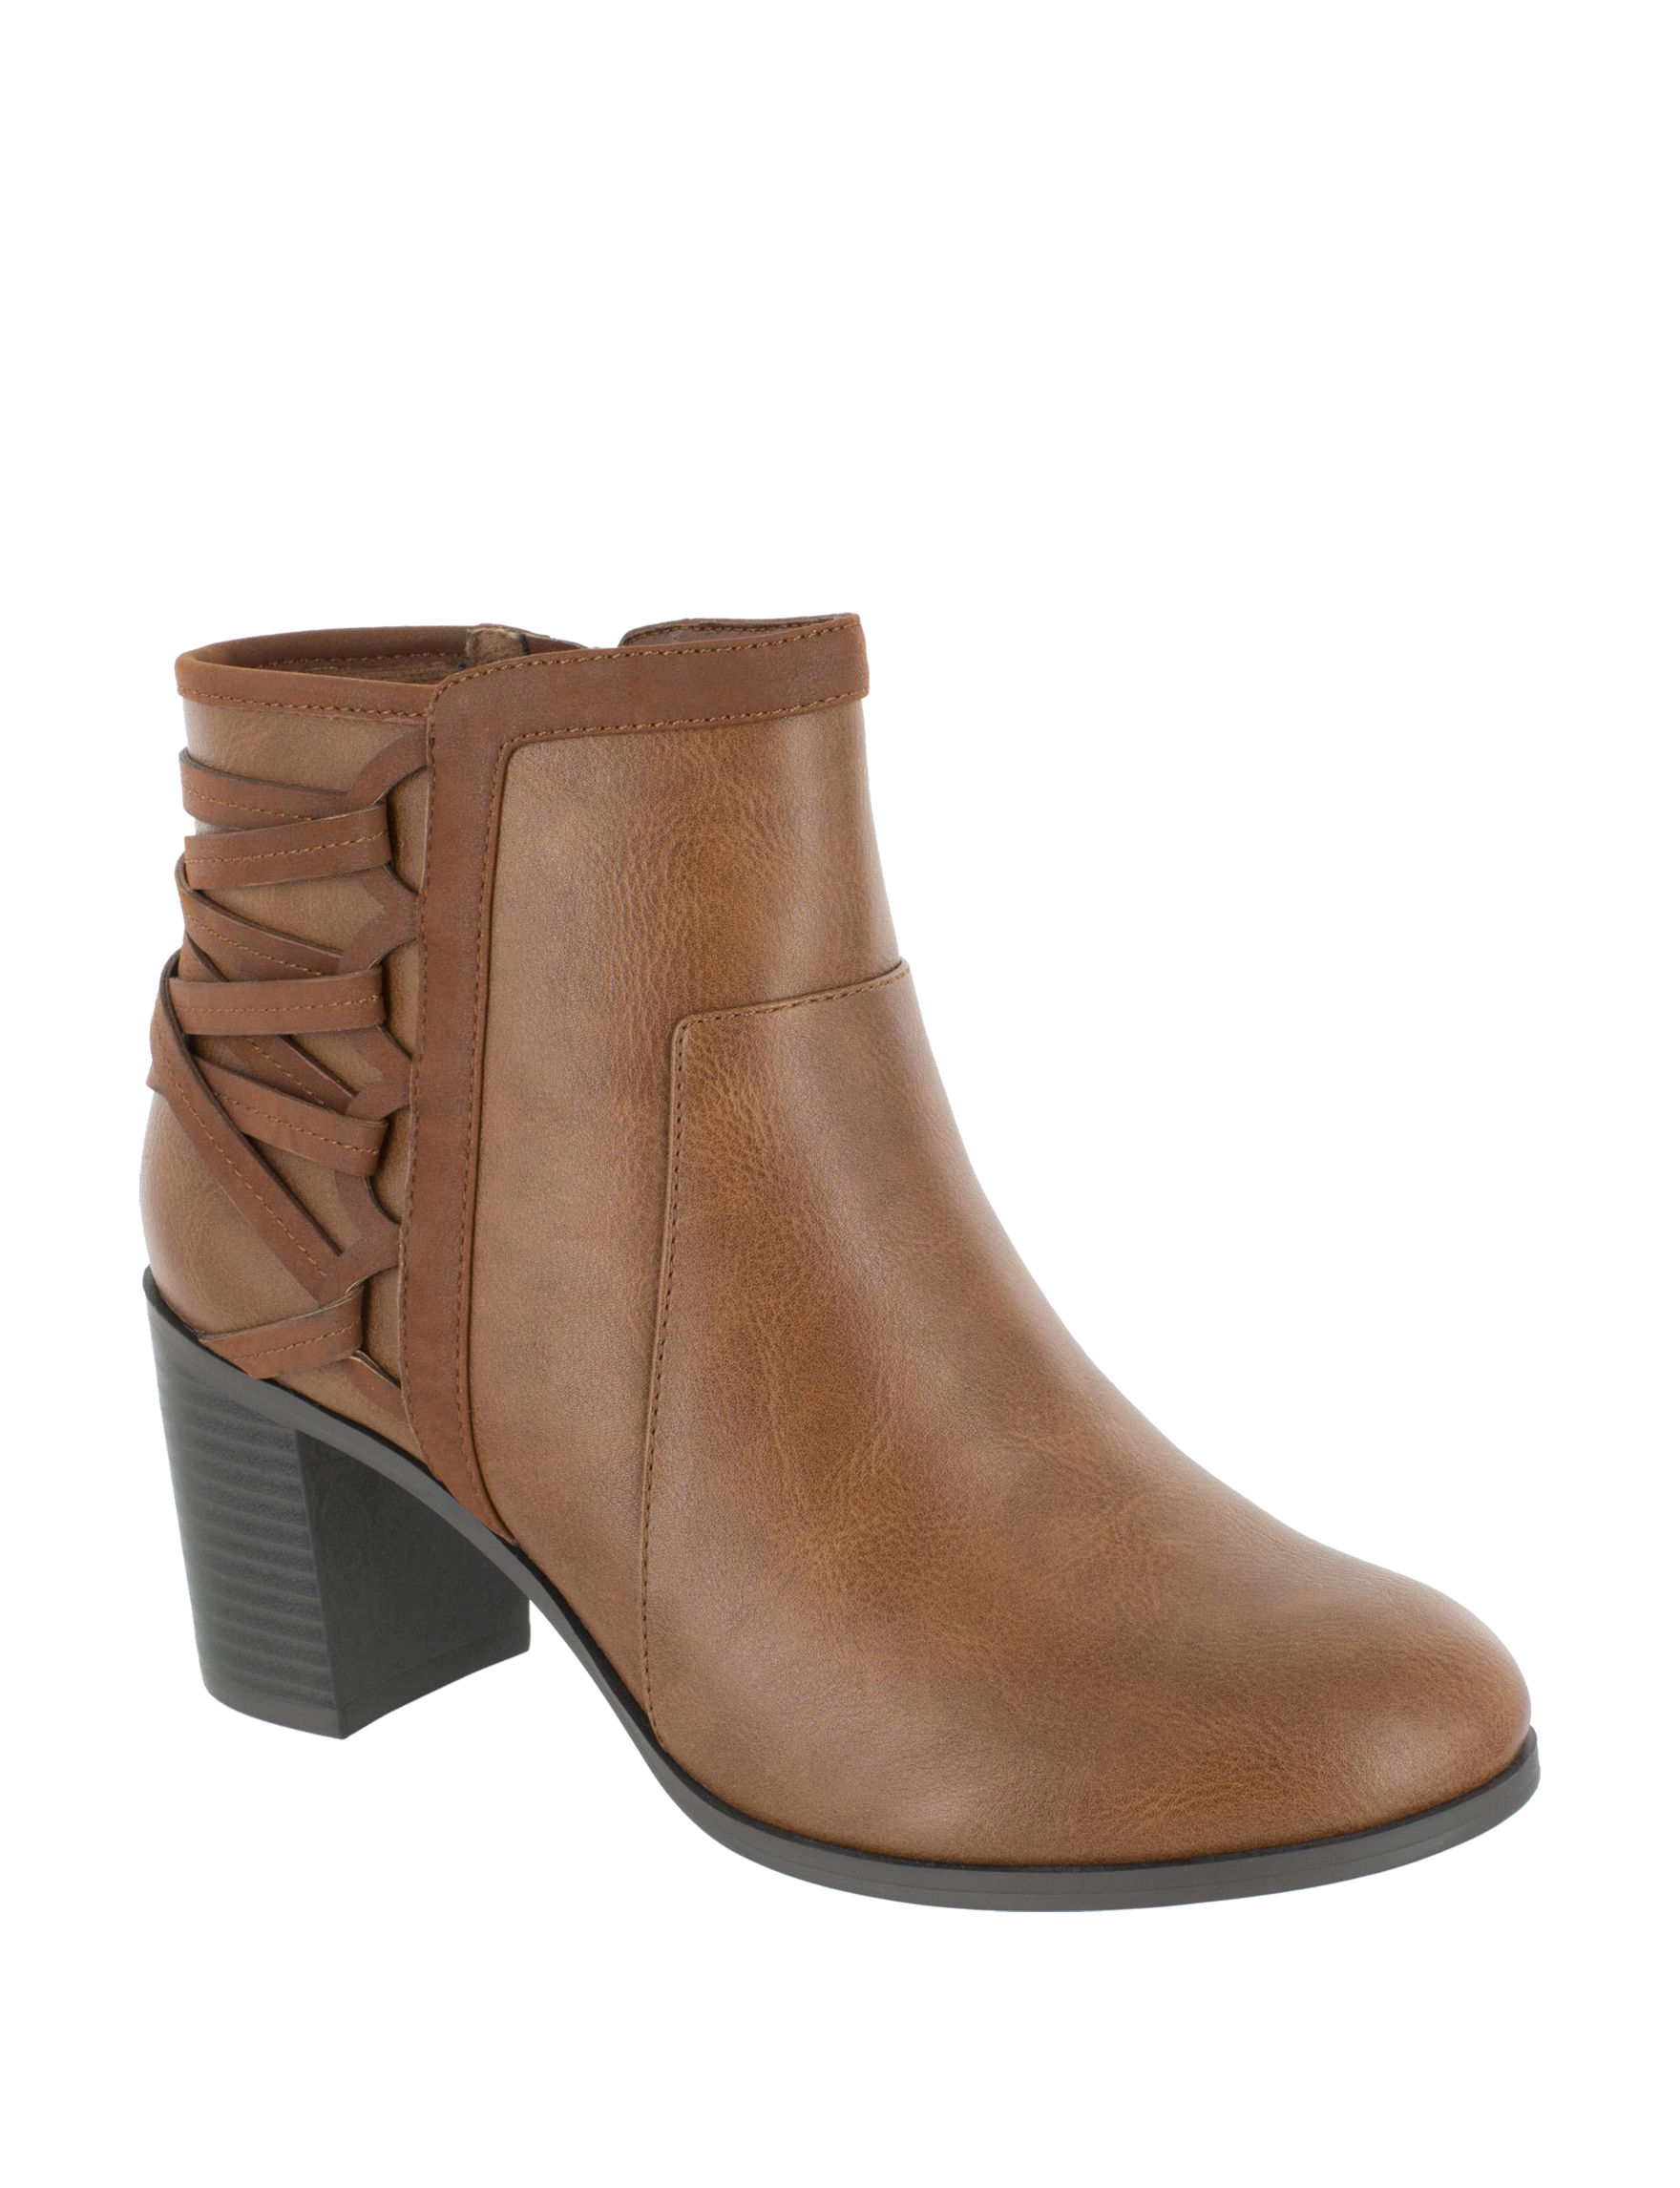 Easy Street Tan Ankle Boots & Booties